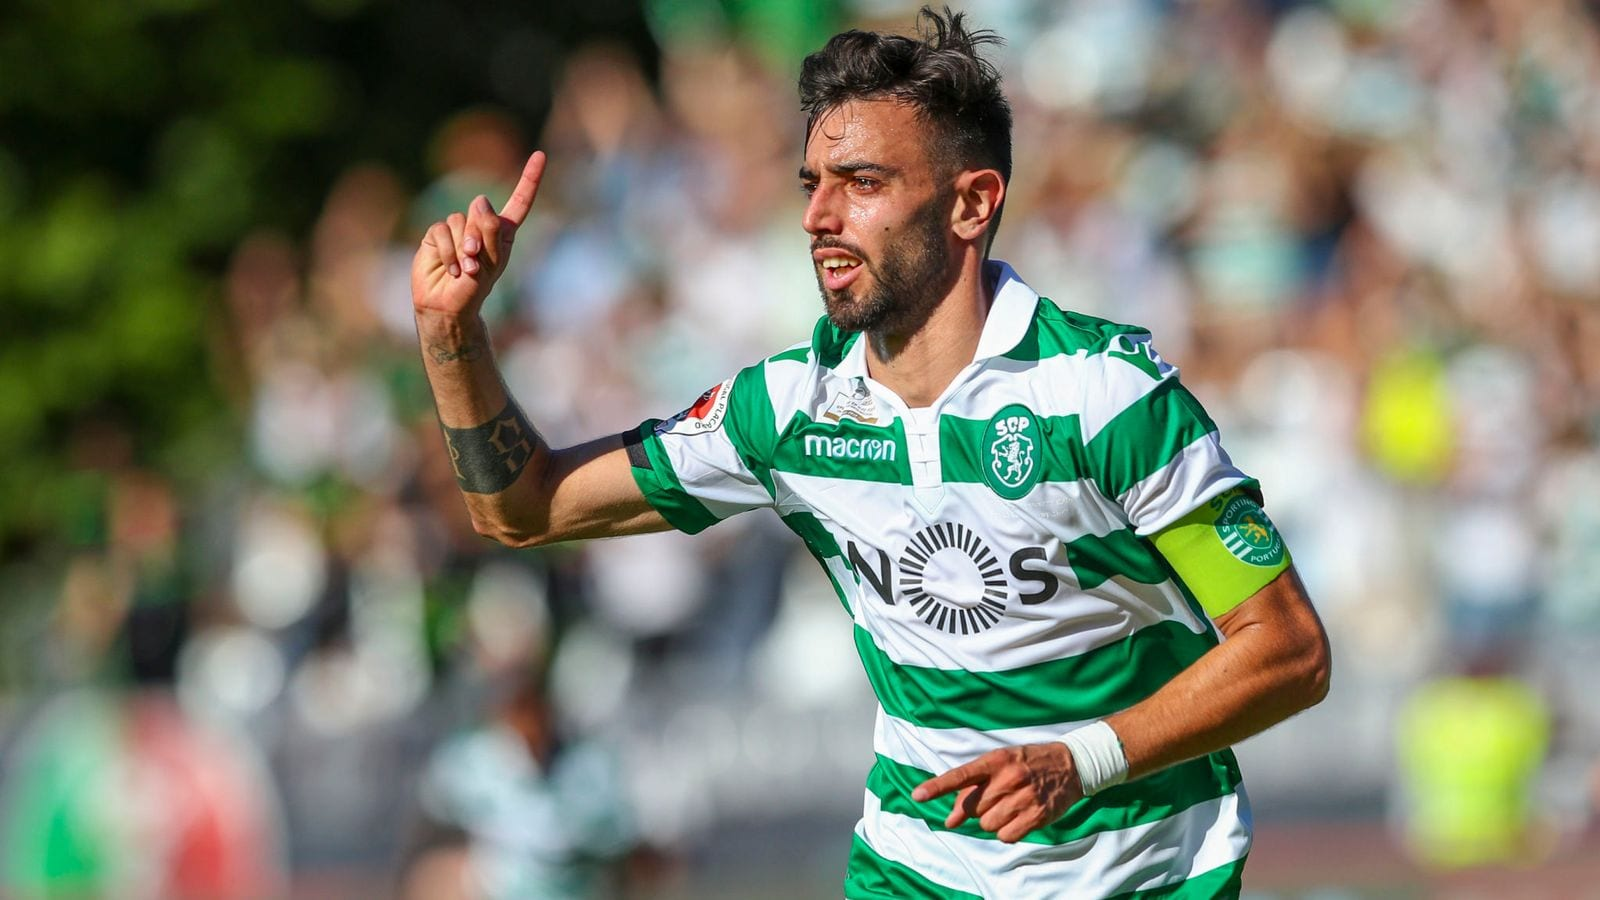 Bruno Fernandes: Man United close to £60m deal with Sporting Lisbon | Football News | Sky Sports